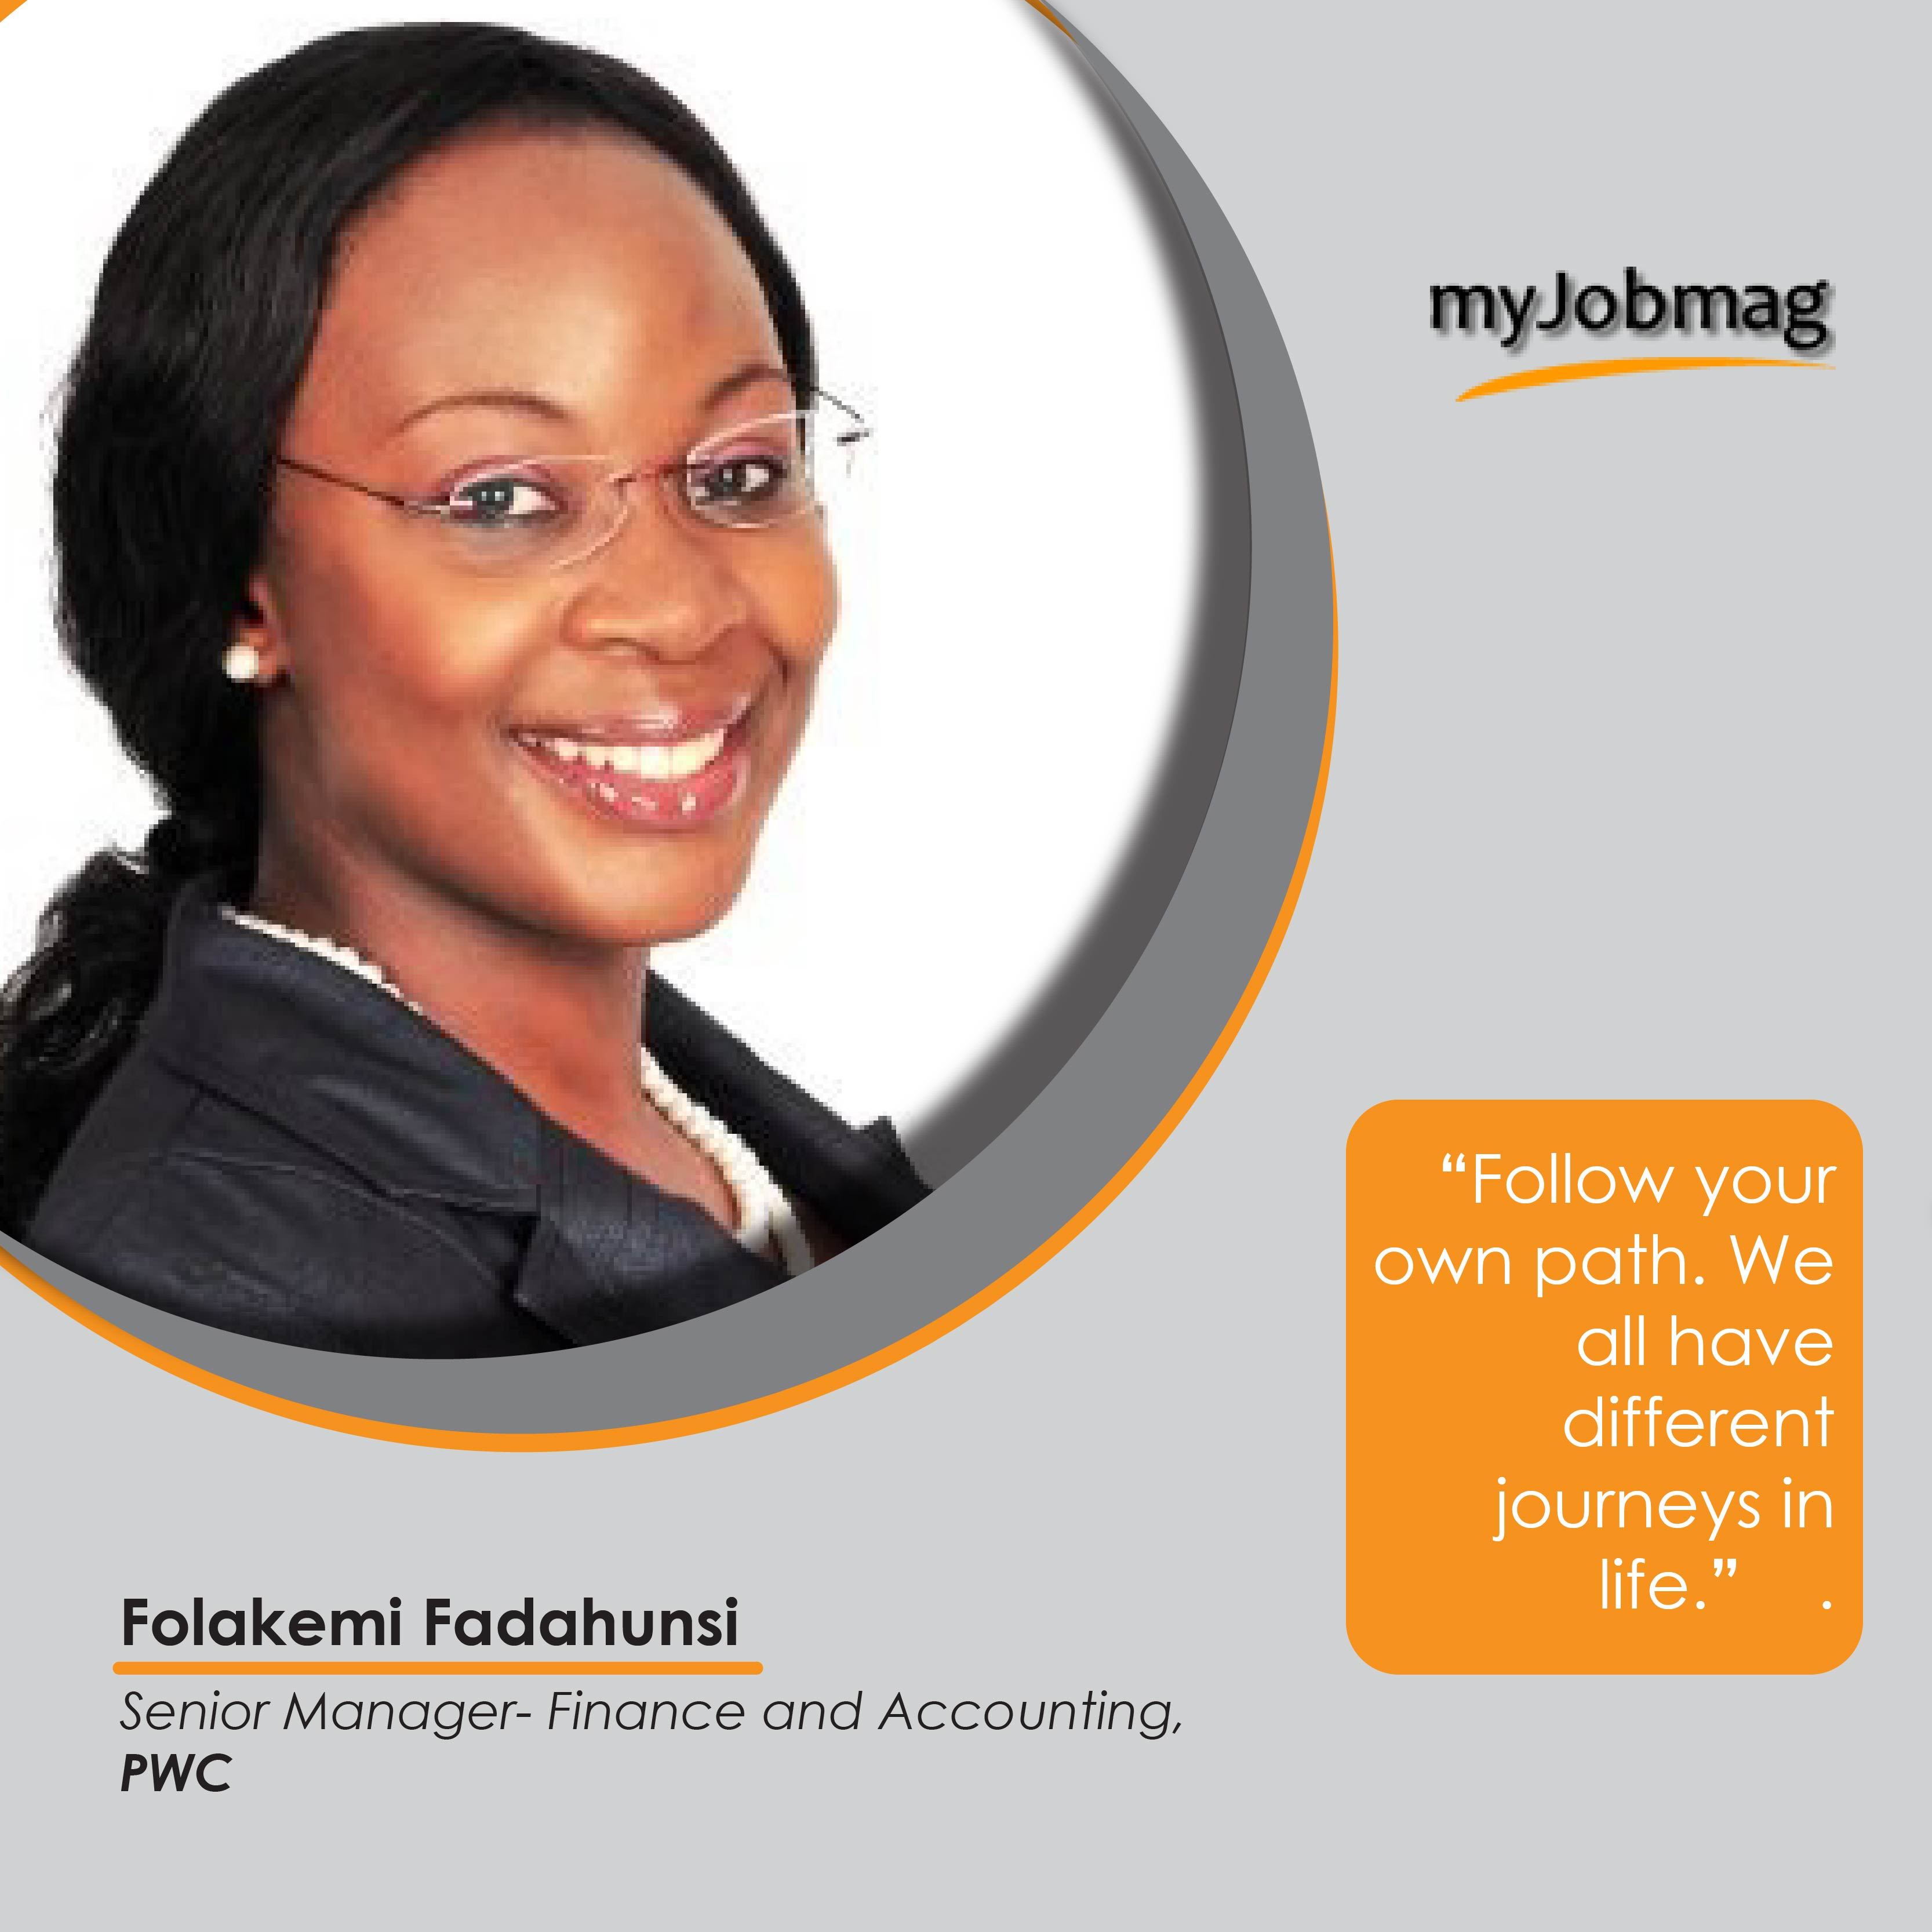 Folakemi Fadahunsi career advice MyJobMag